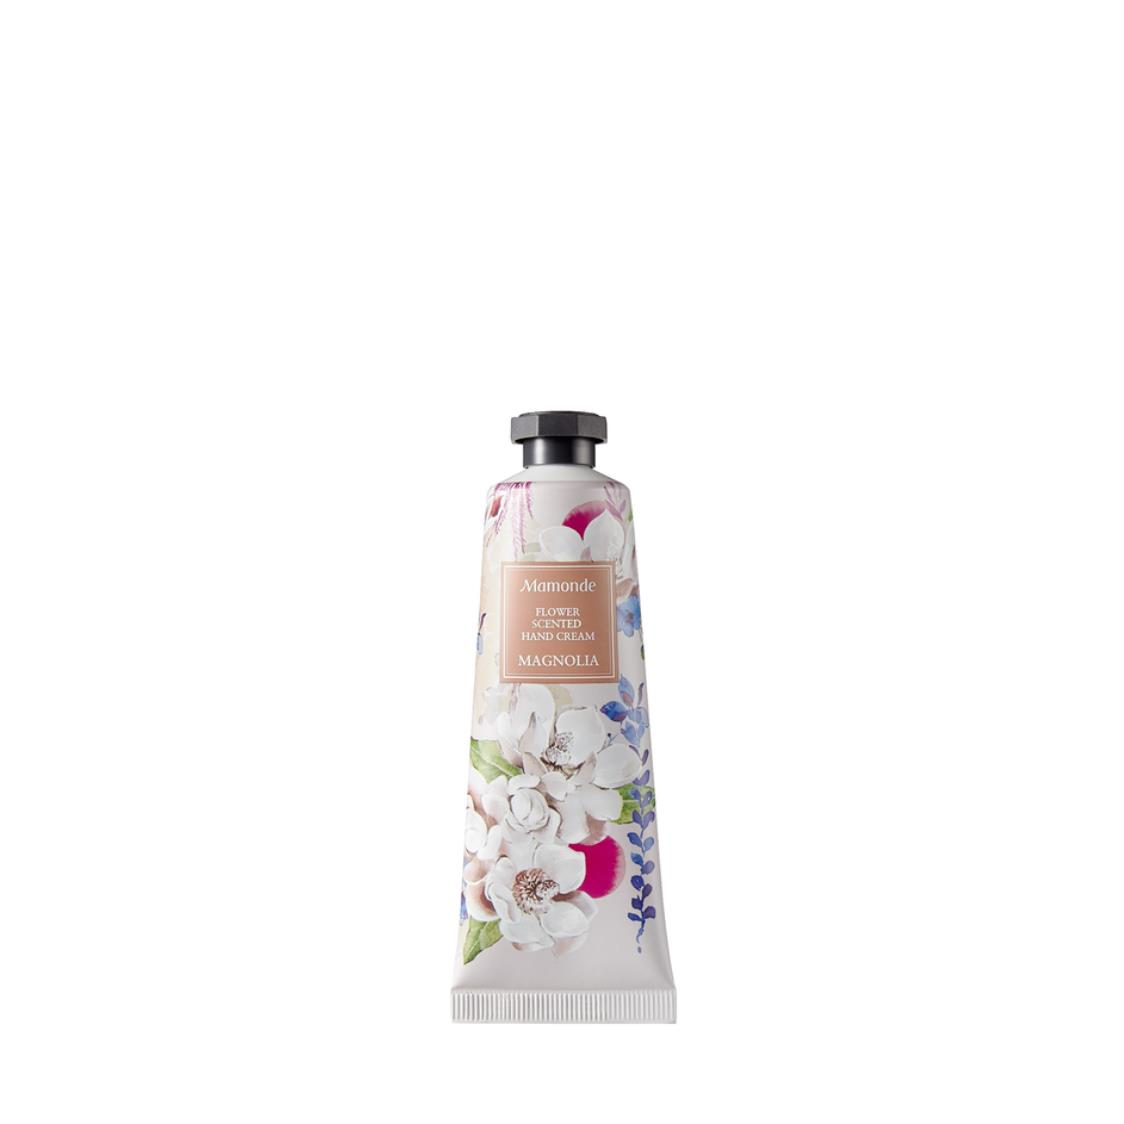 Magnolia Perfumed Hand Cream 50ml